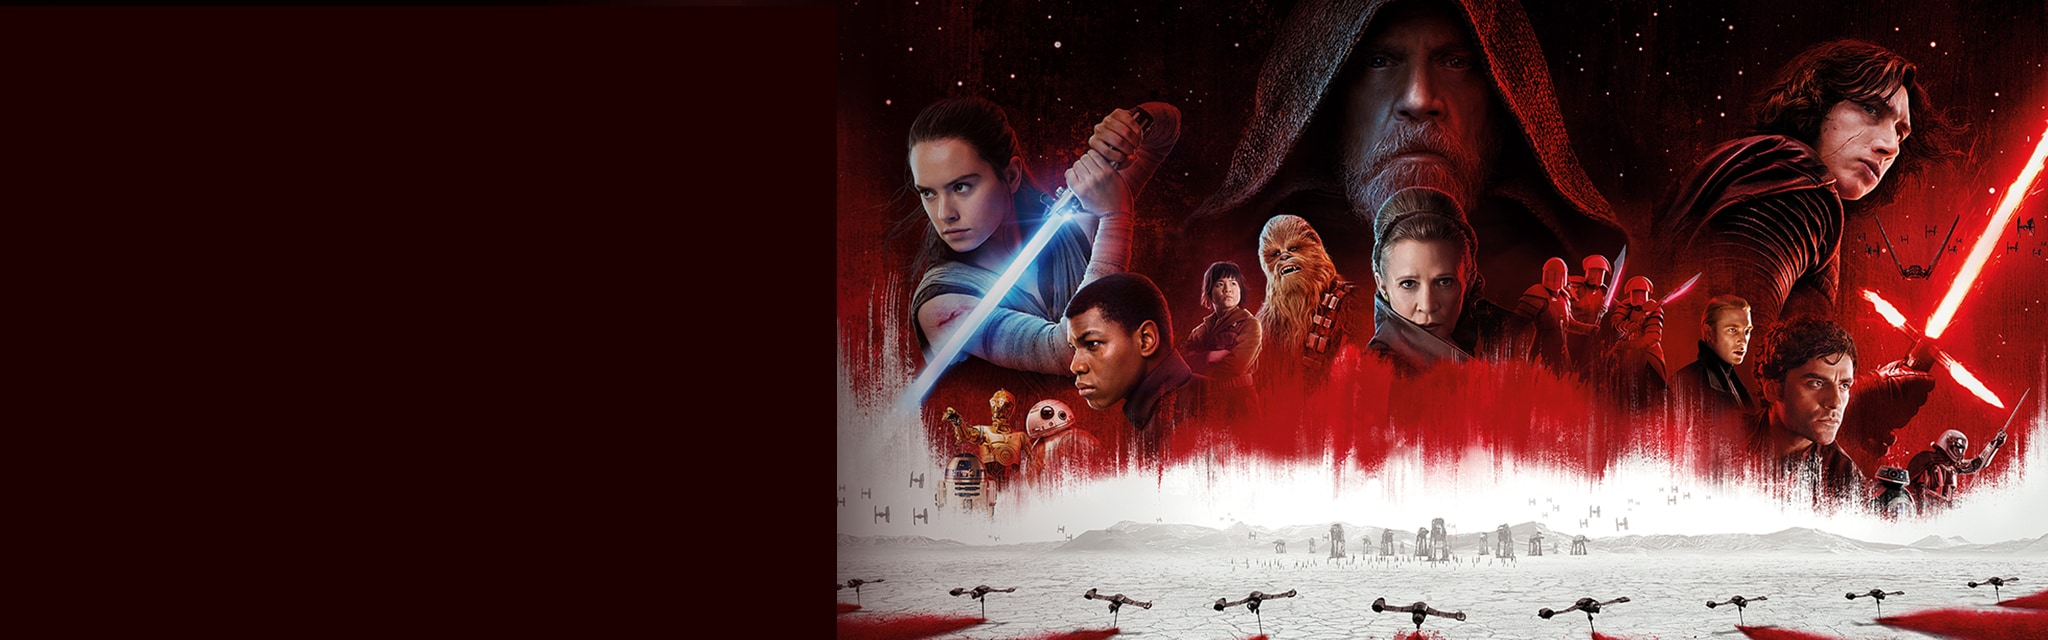 Star Wars - The Last Jedi- Get Tickets - Hero